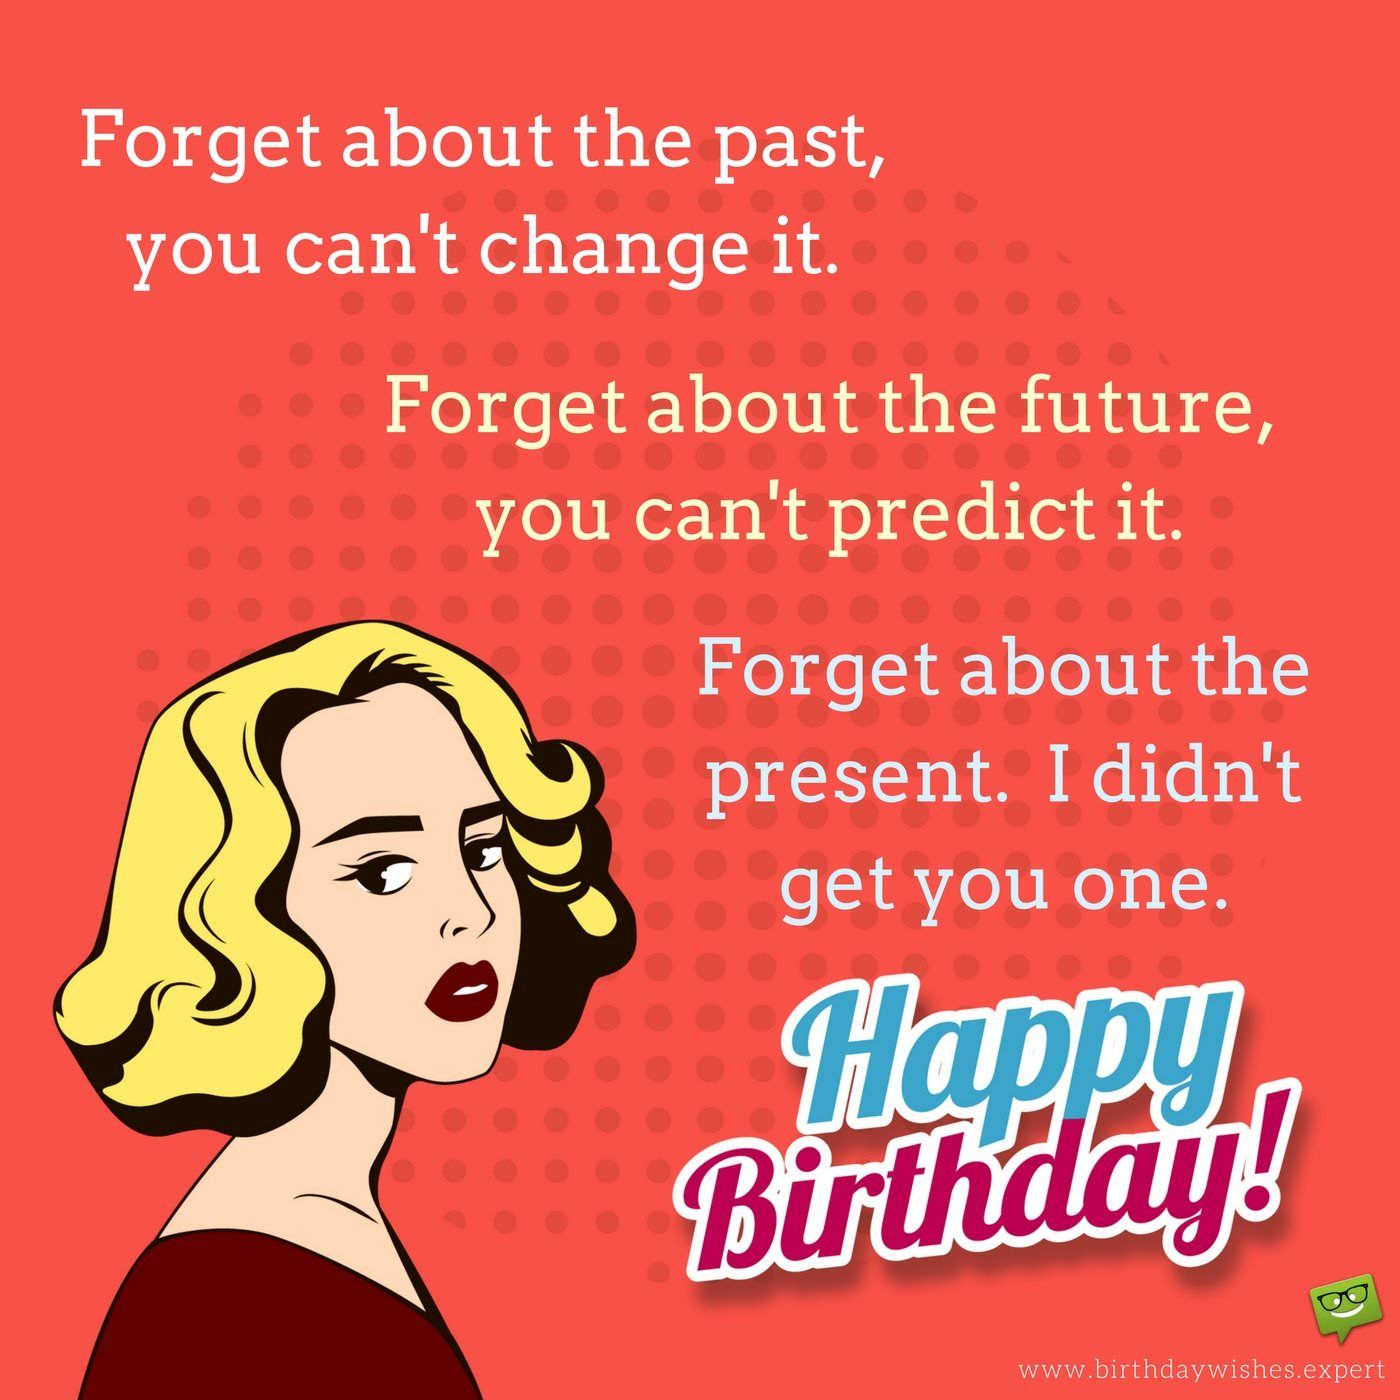 Related Image Birthday Wishes Funny Sister Birthday Quotes Birthday Wishes For Sister